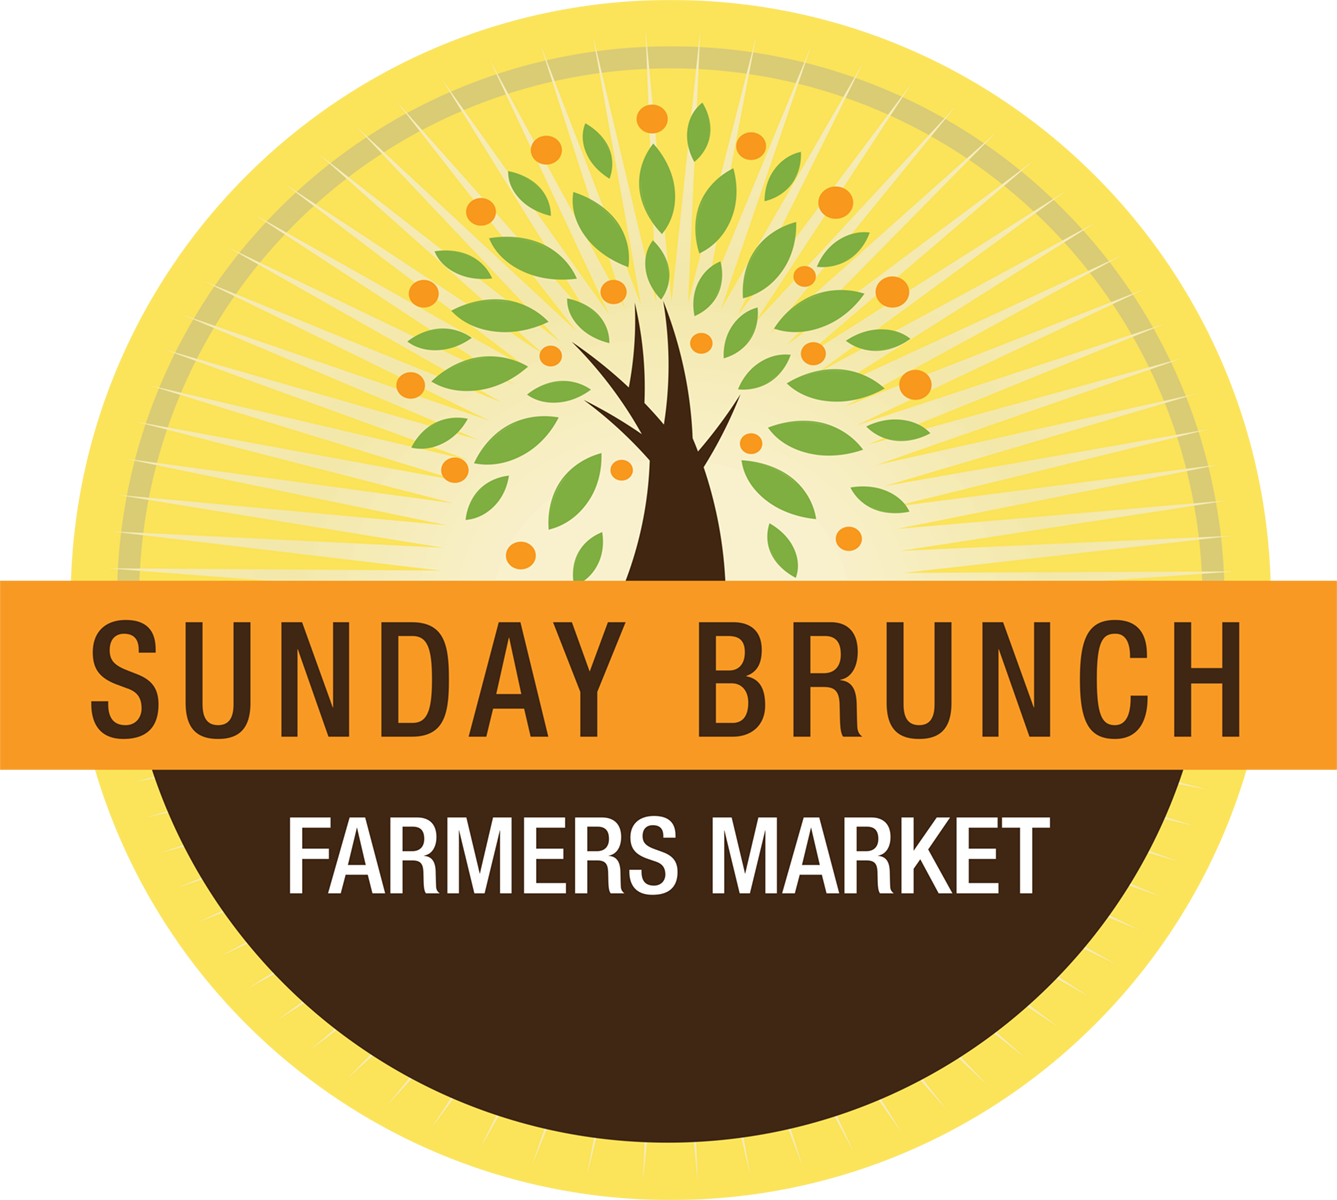 Sunday Brunch Farmers Market